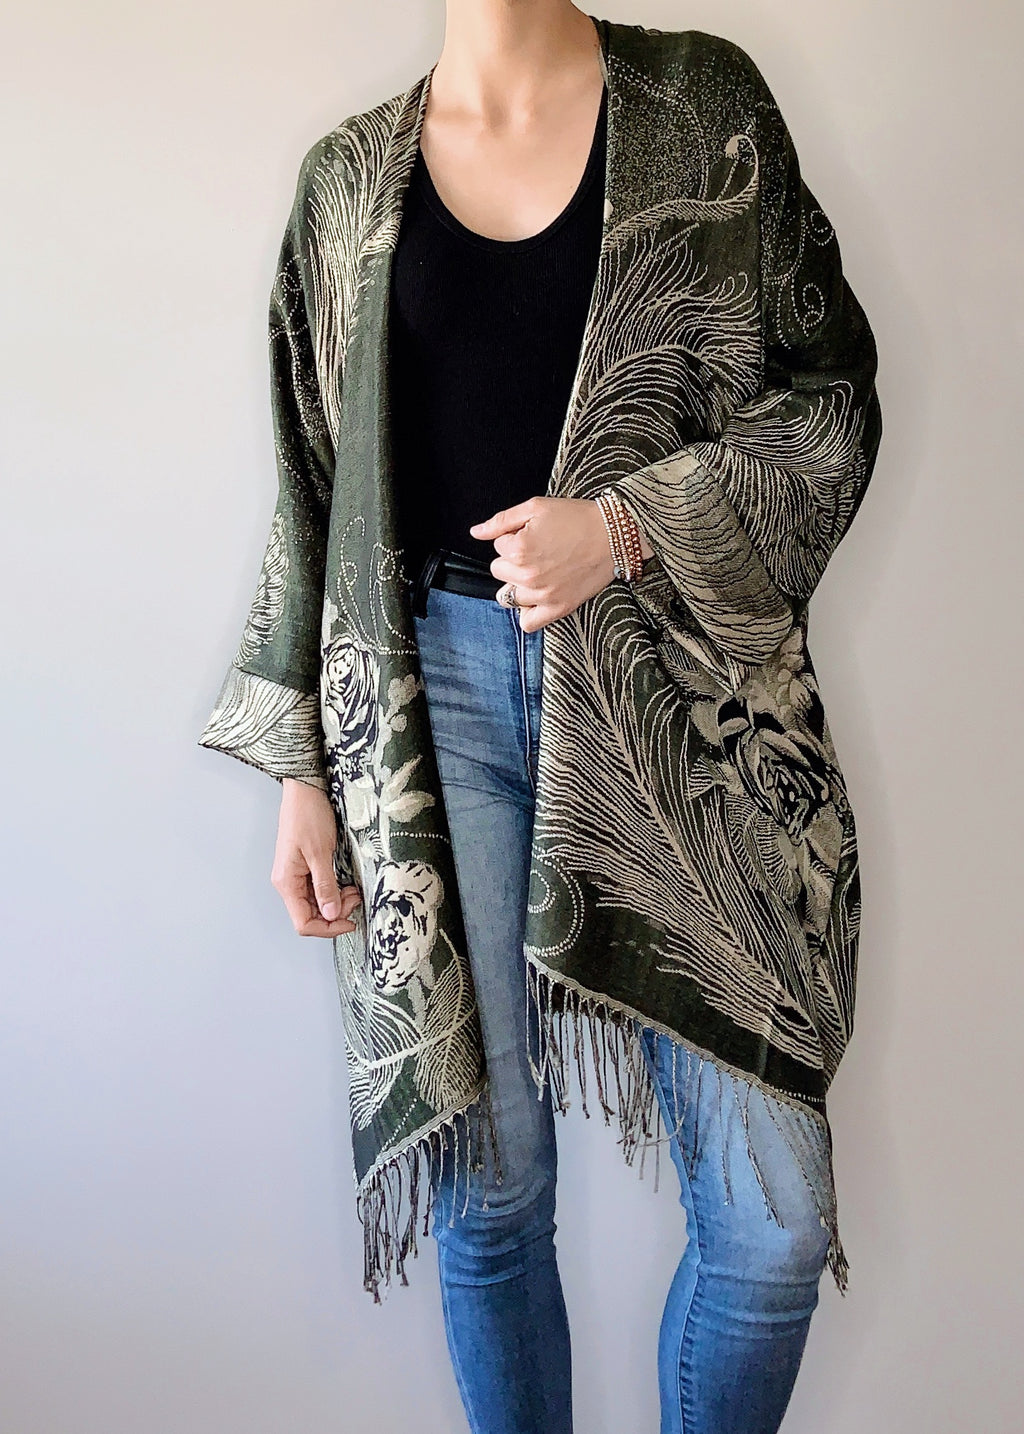 Primrose Boho Jacket in Olive with Cuffs